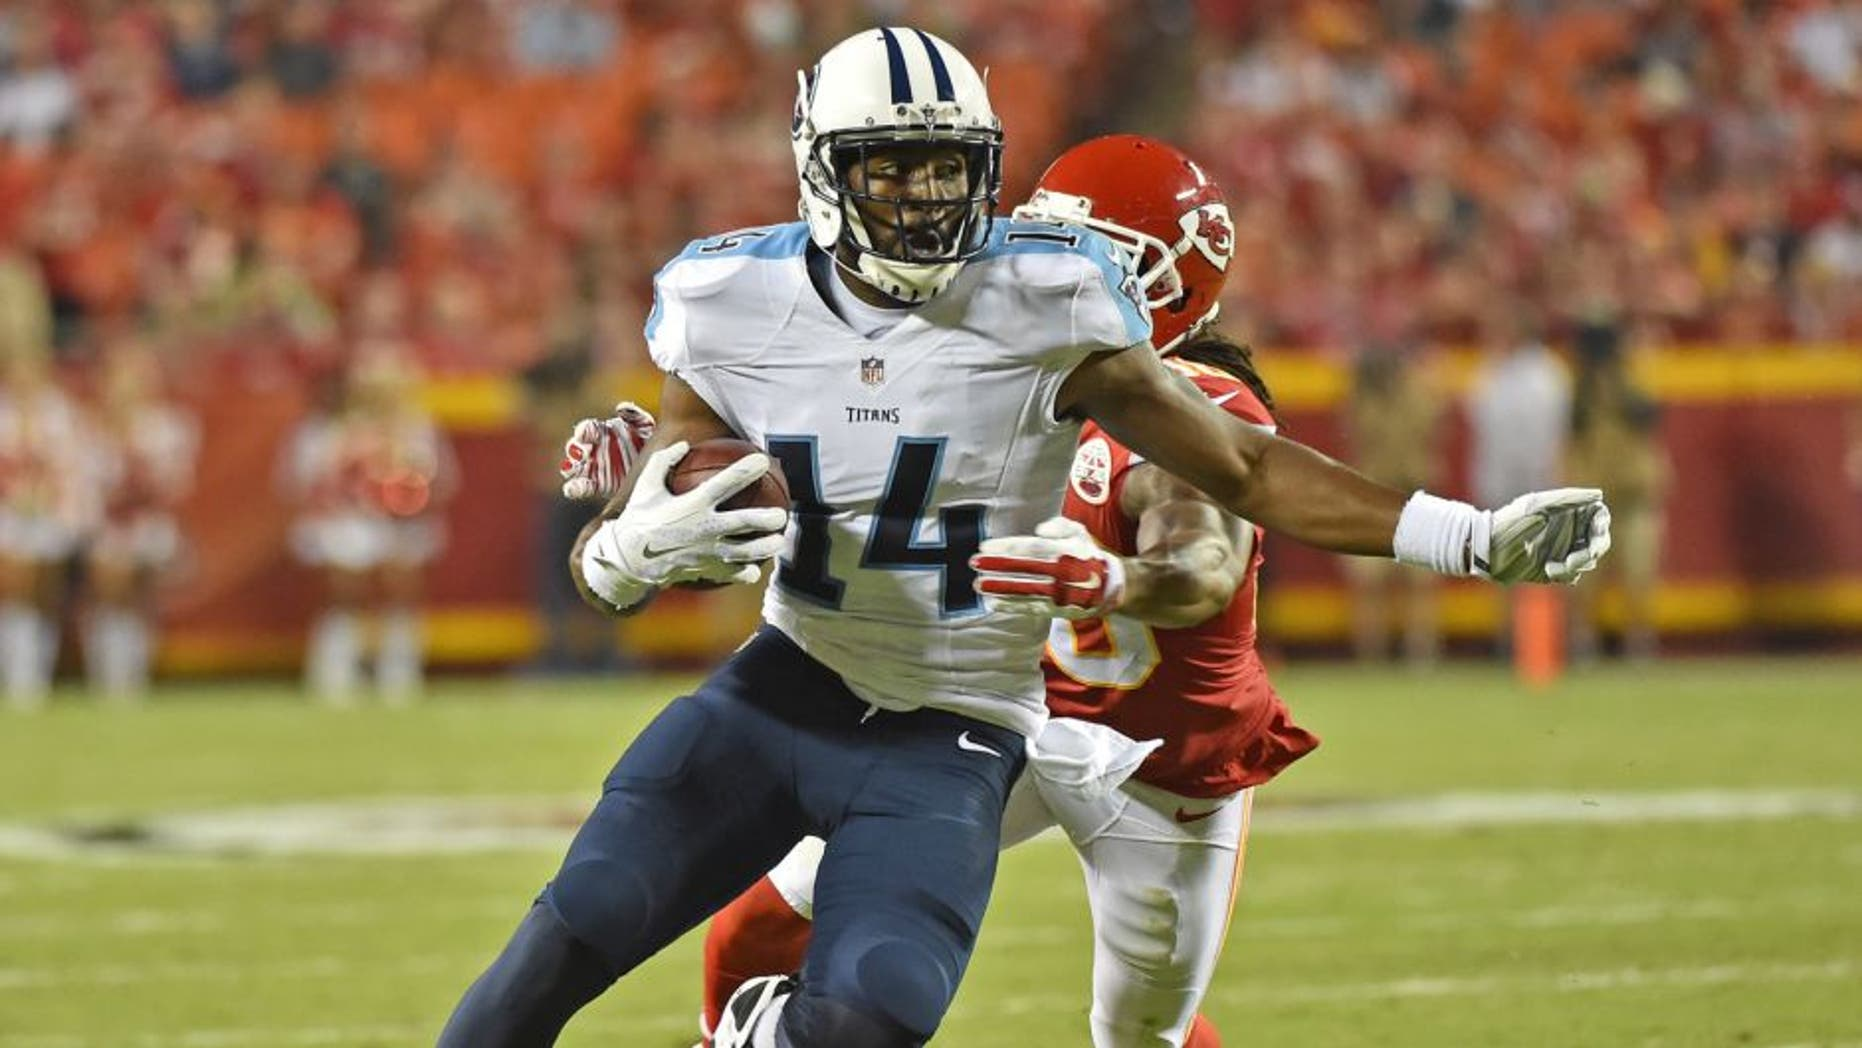 KANSAS CITY, MO - AUGUST 28: Wide receiver Hakeem Nicks #14 of the Tennessee Titans runs up field against defensive back Jamell Fleming #30 of the Kansas City Chiefs during the first half of a preseason game at Arrowhead Stadium on August 28, 2015 in Kansas City, Missouri. (Photo by Peter G. Aiken/Getty Images)